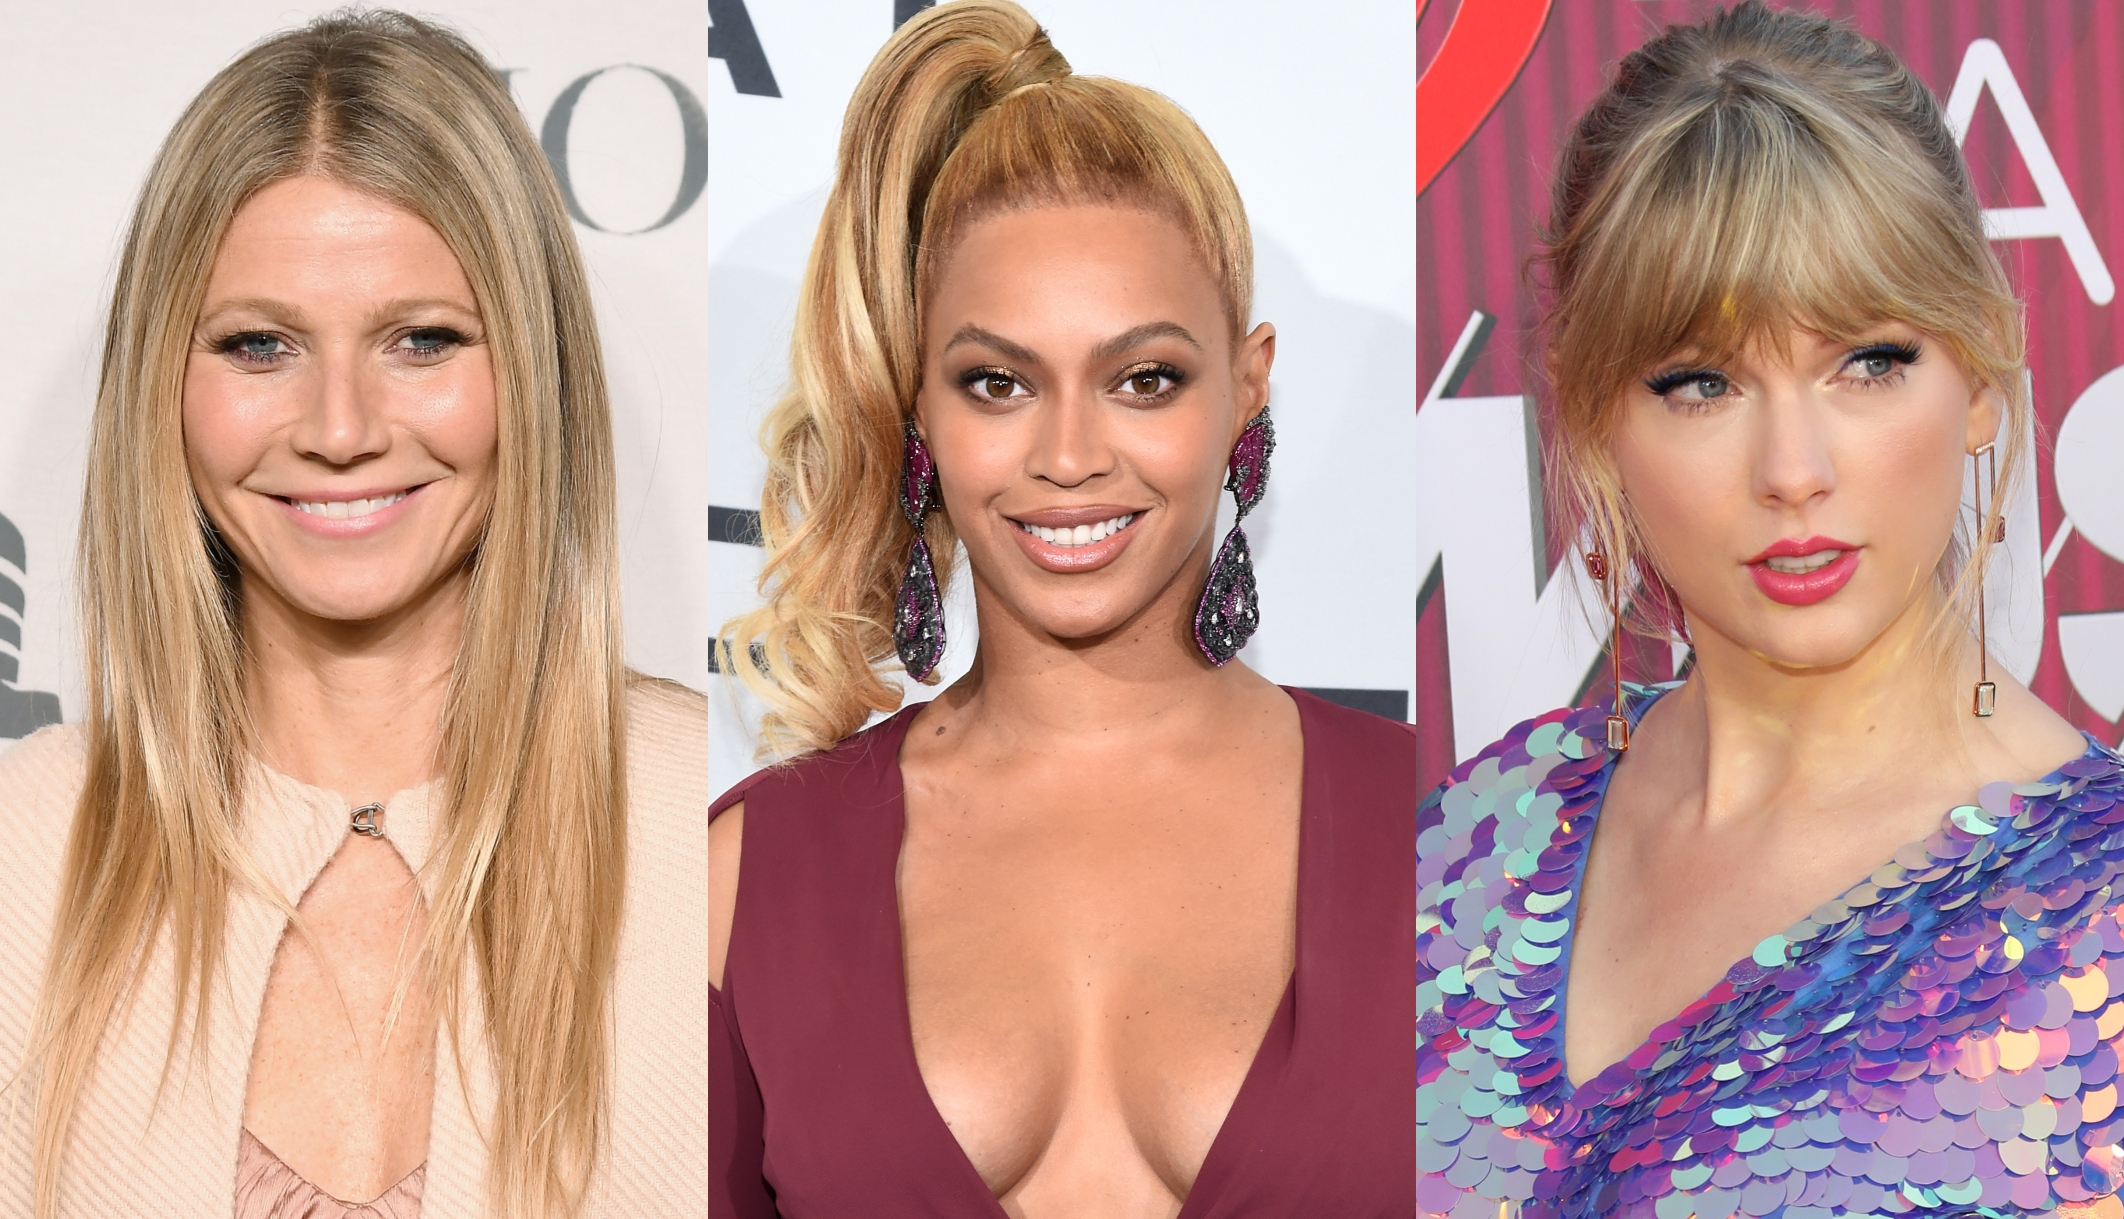 Gwyneth Paltrow, Beyonce Knowles, and Taylor Swift